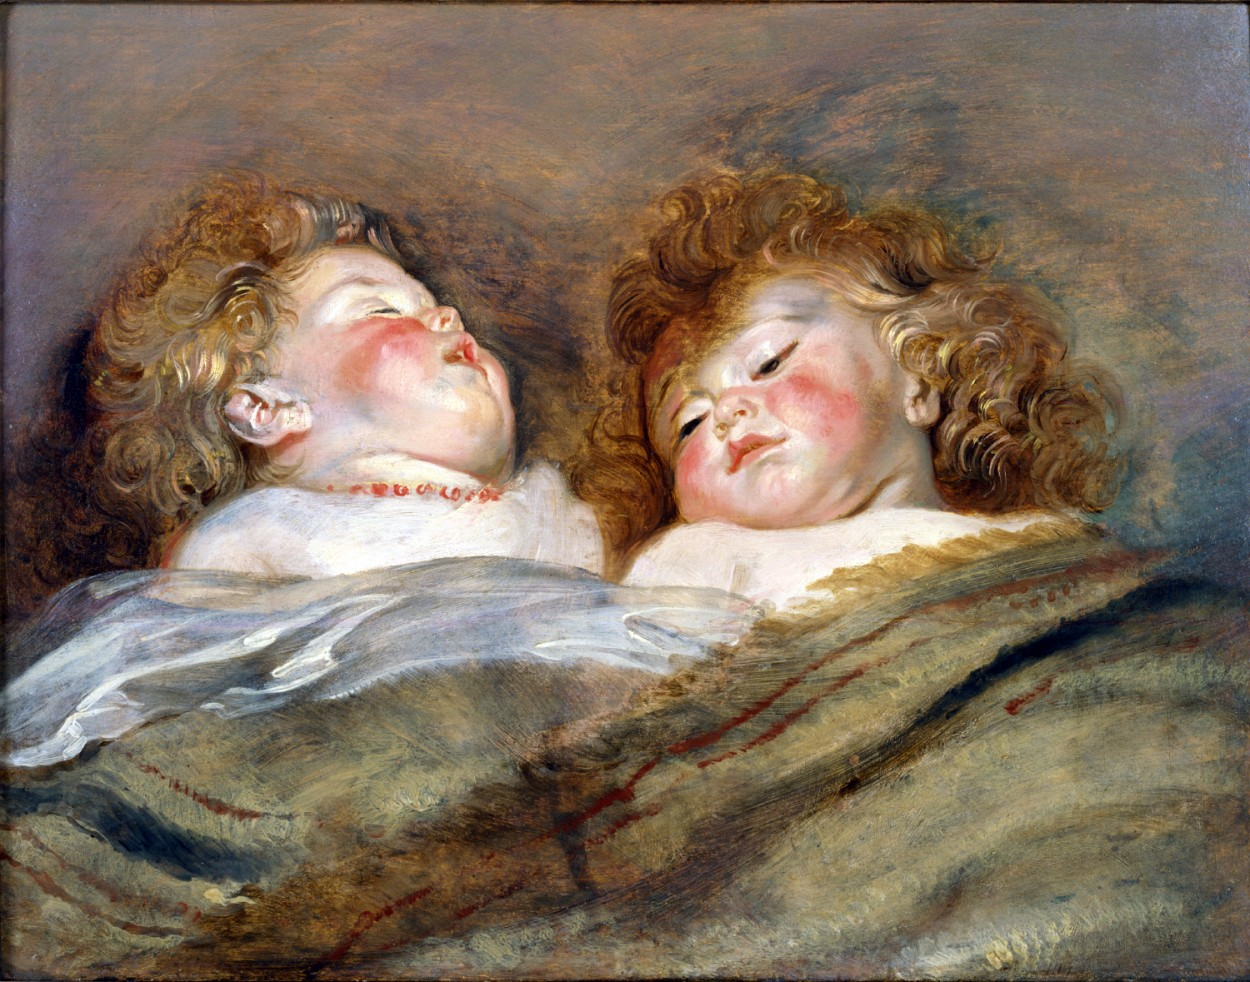 Two Sleeping Children by Peter Paul Rubens via DailyArt app, your daily dose of art getdailyart.com